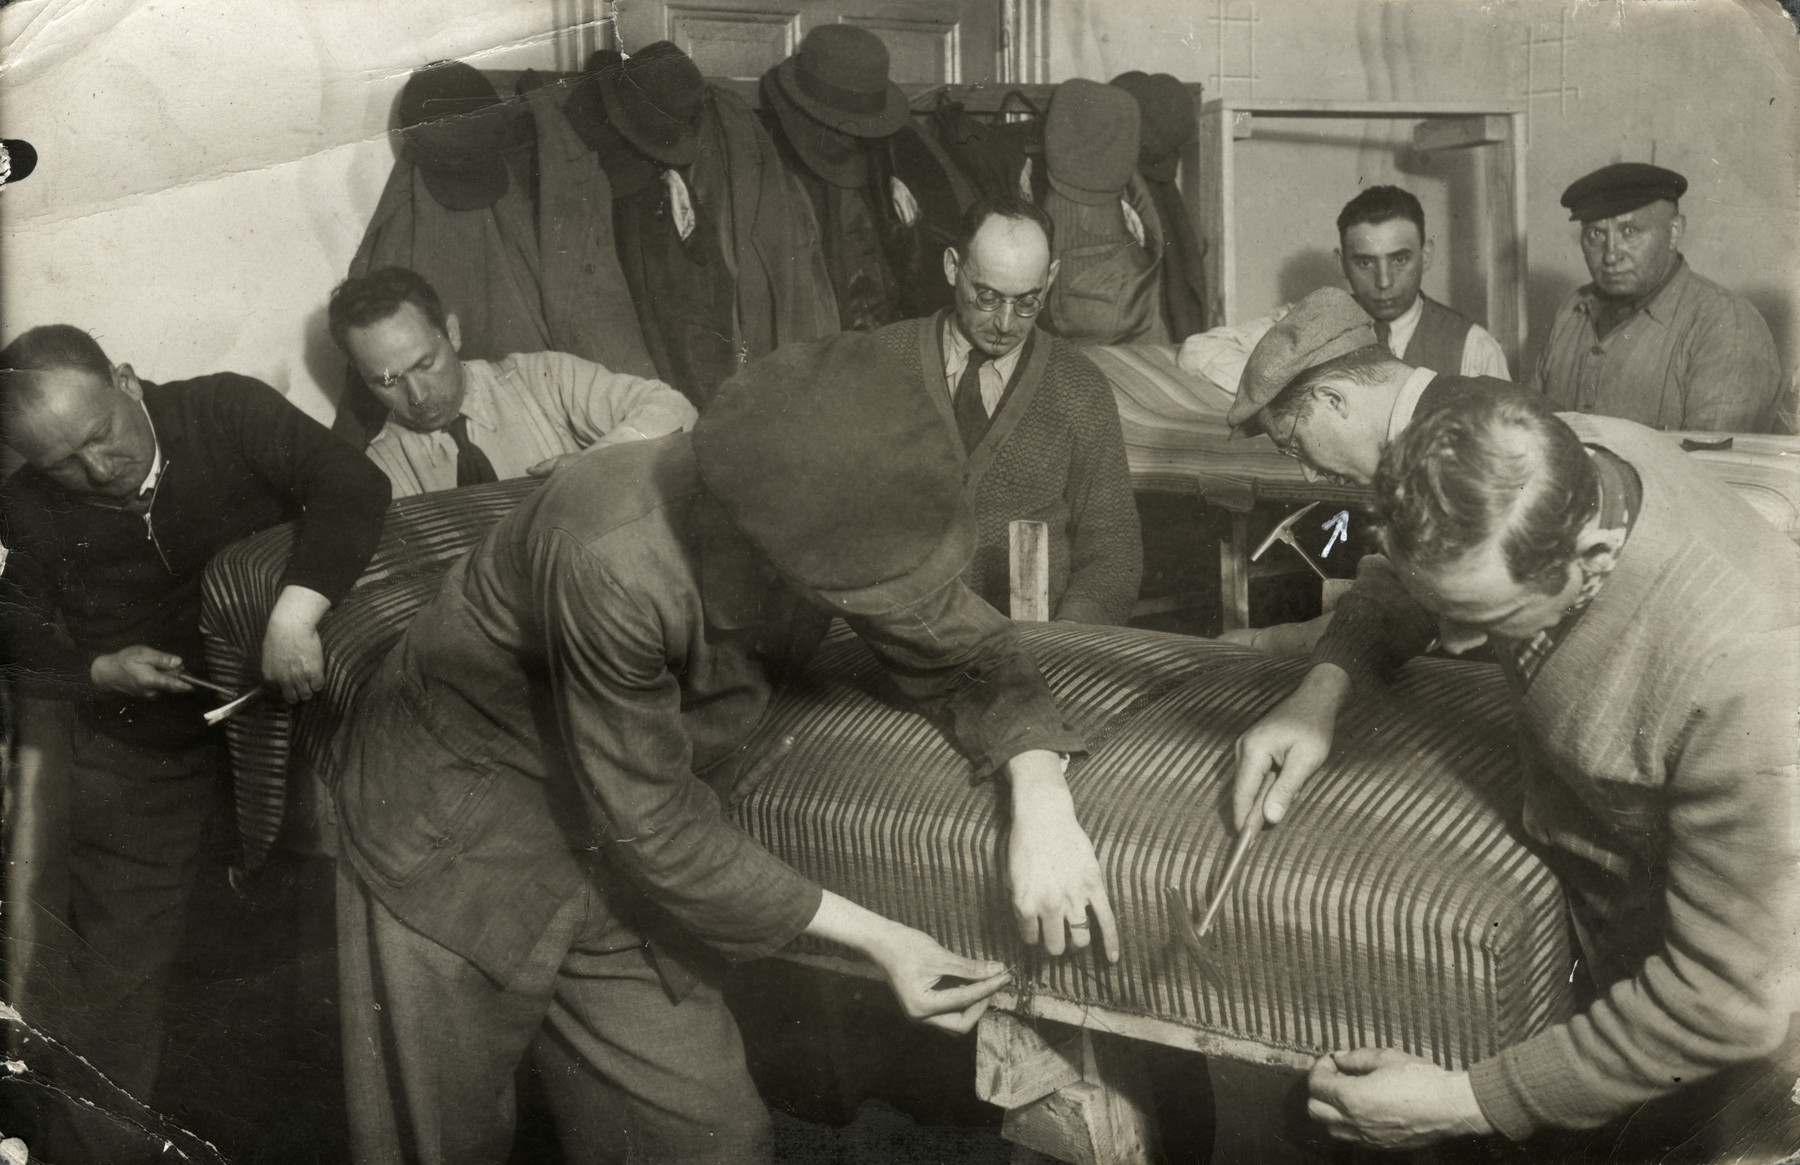 German Jews exiled to Zbaszyn reupholster furniture in a workshop.  Yehoshua Birnbaum is on the middle left with a cap and glasses.